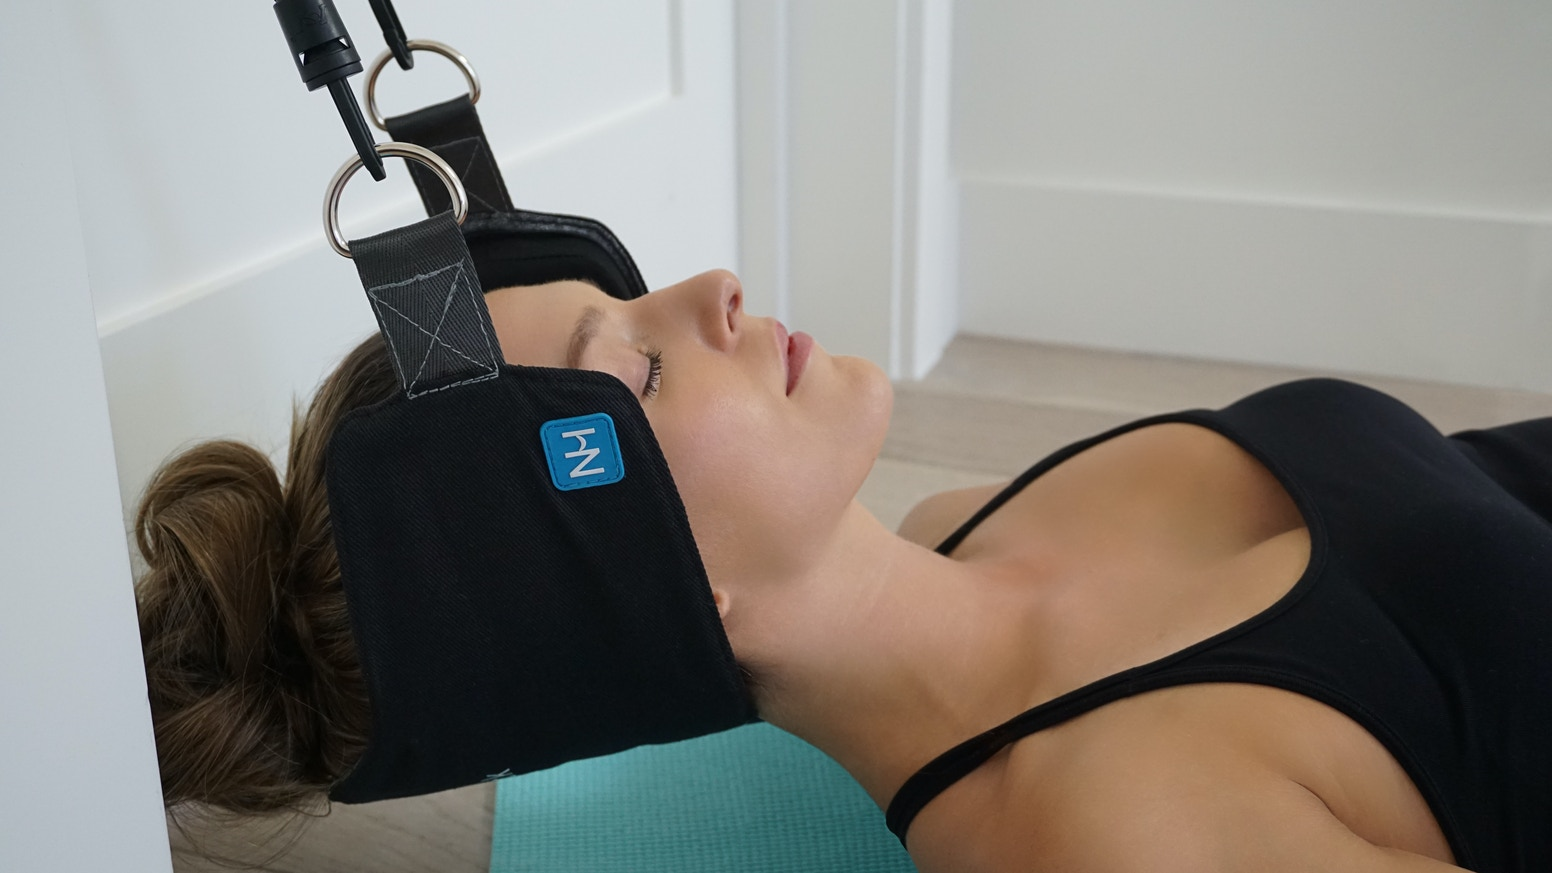 The Neck Hammock is a simple device that attaches to any door for neck pain relief in just ten minutes or less.